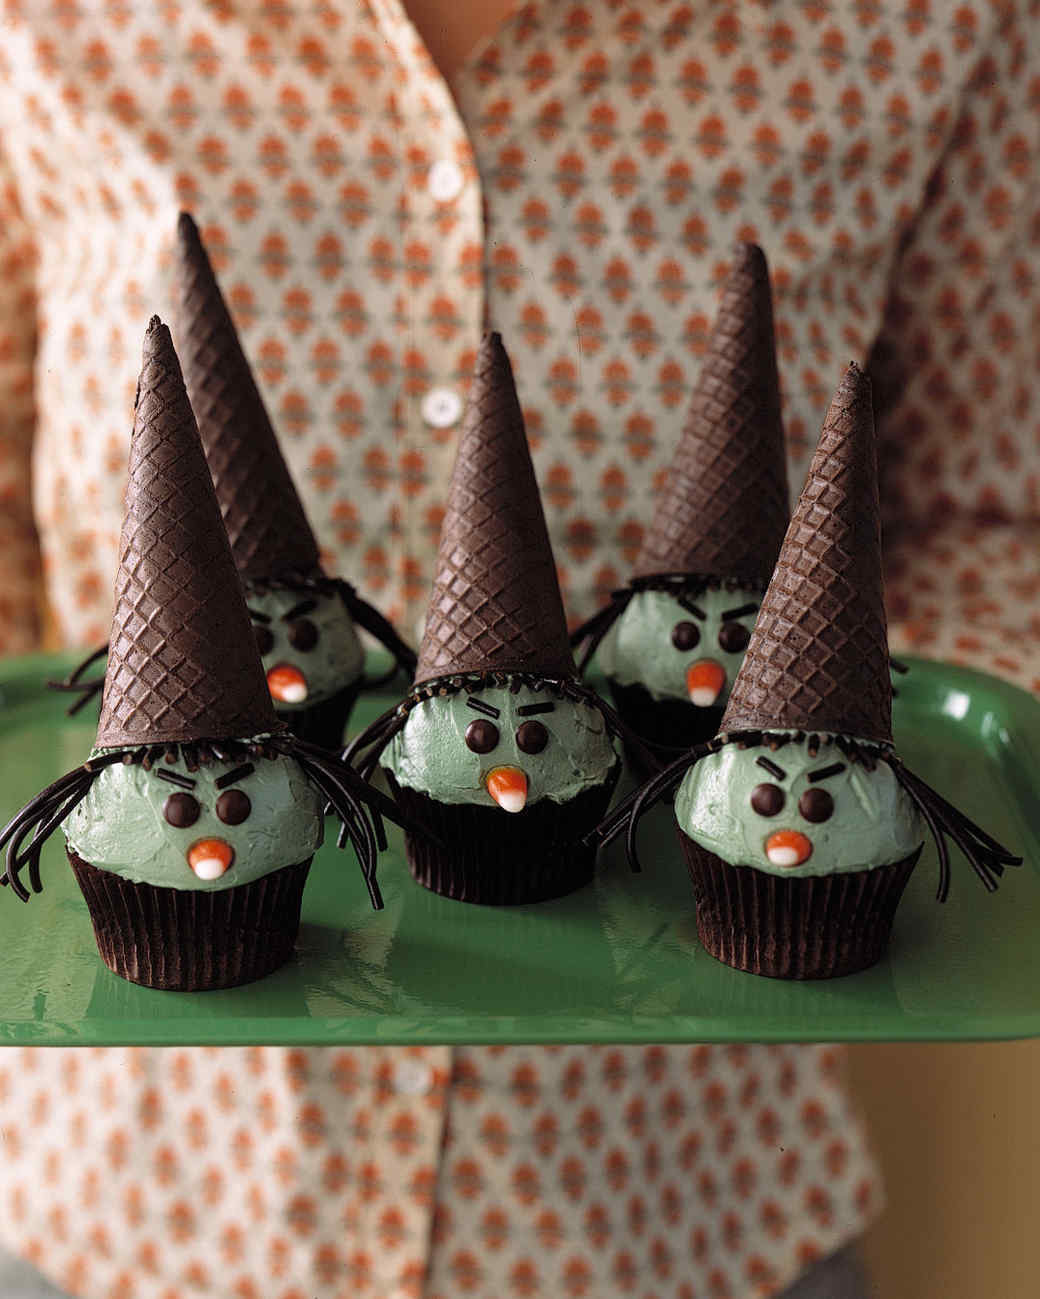 Home Decor Shop Design Ideas: Halloween Cupcake Recipes